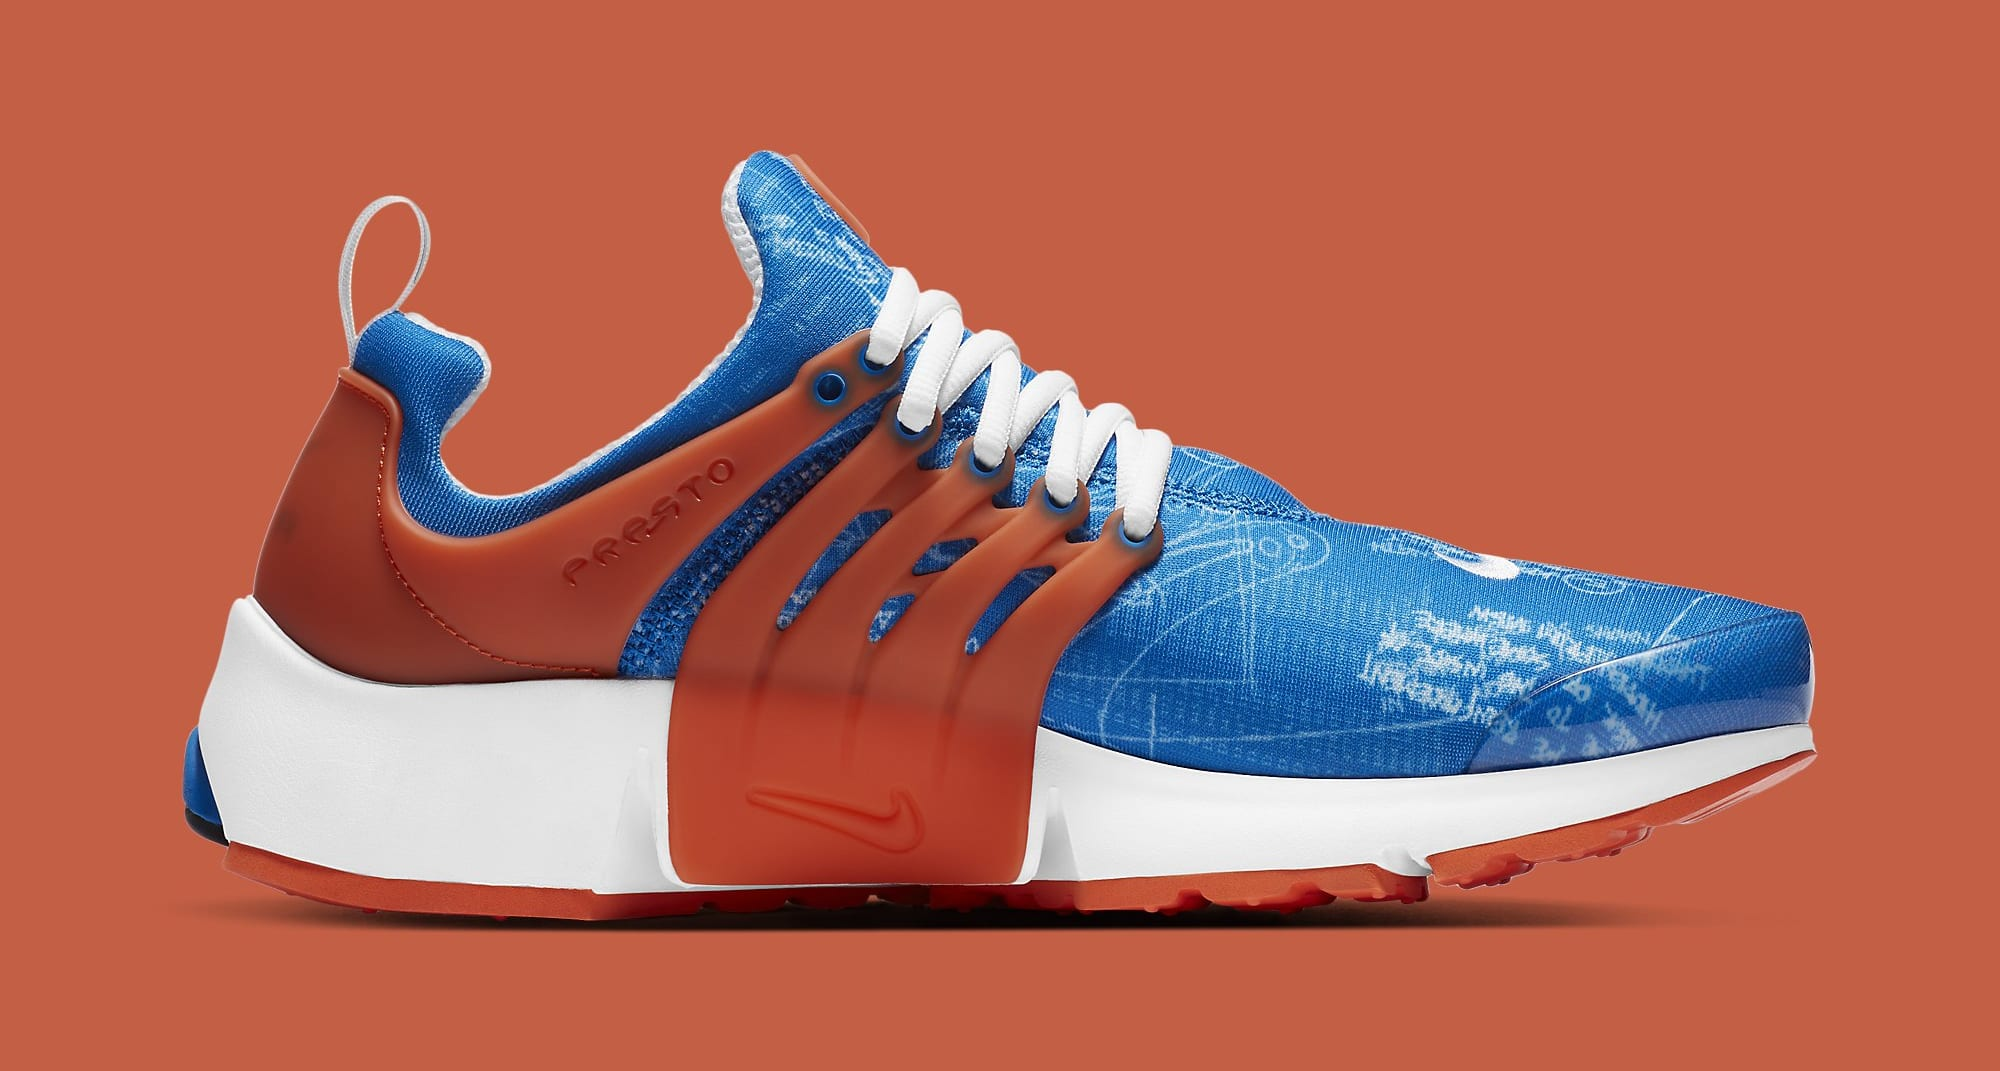 Nike Air Presto 'Soar' CJ1229-401 Medial